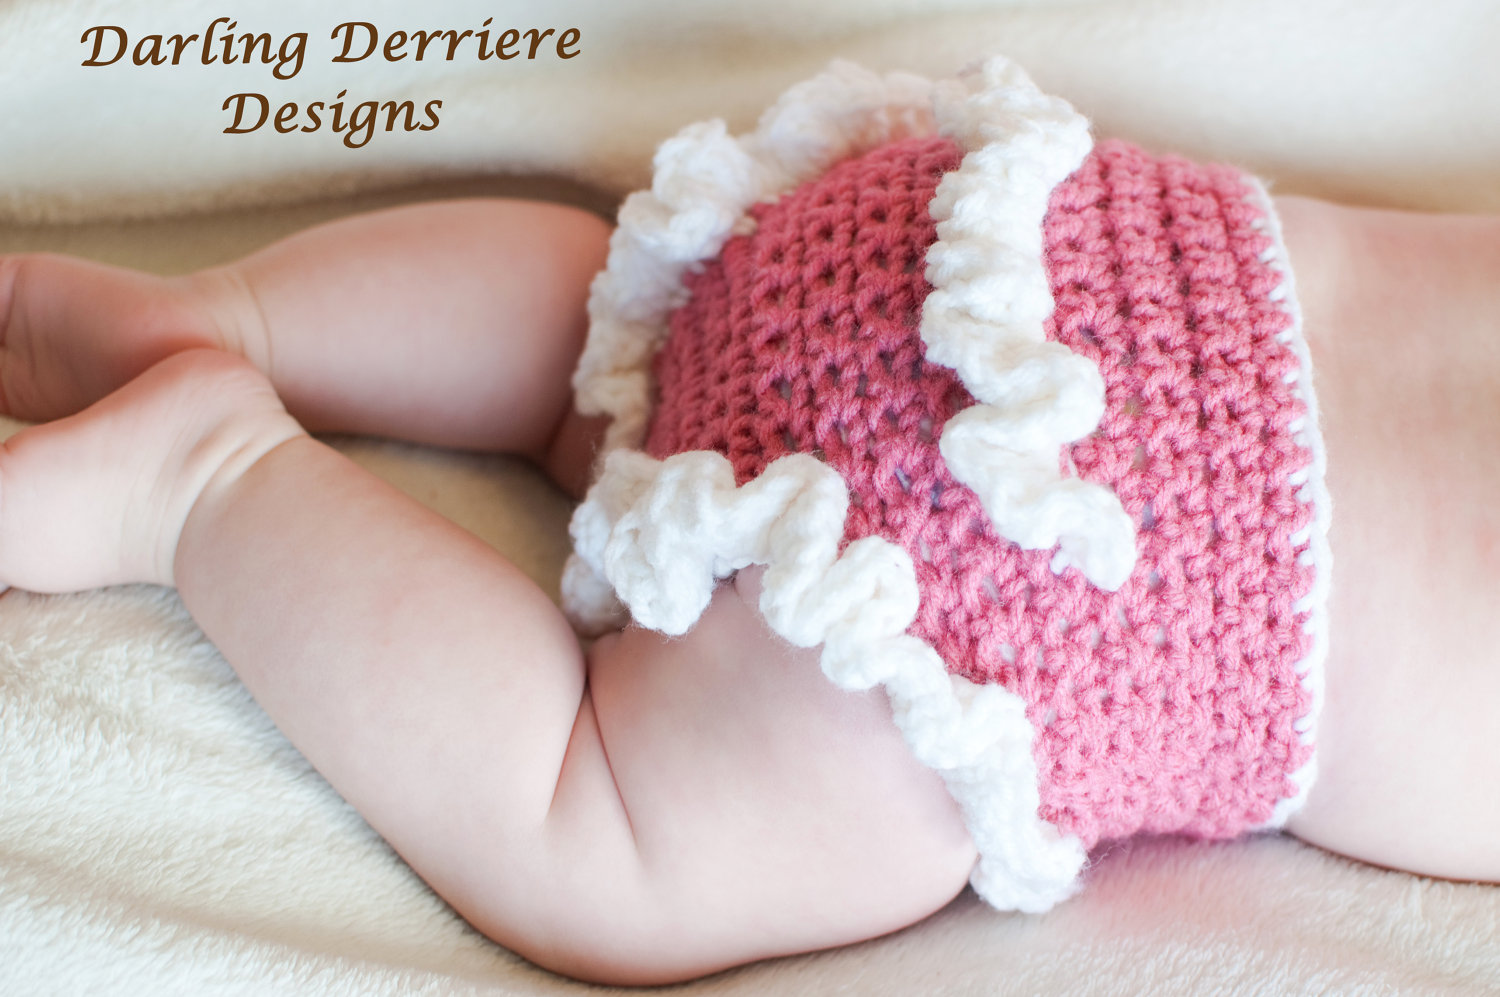 Crochet Patterns Diaper Covers : diaper cover crochet pattern 25 reviews ruffle diaper cover crochet ...